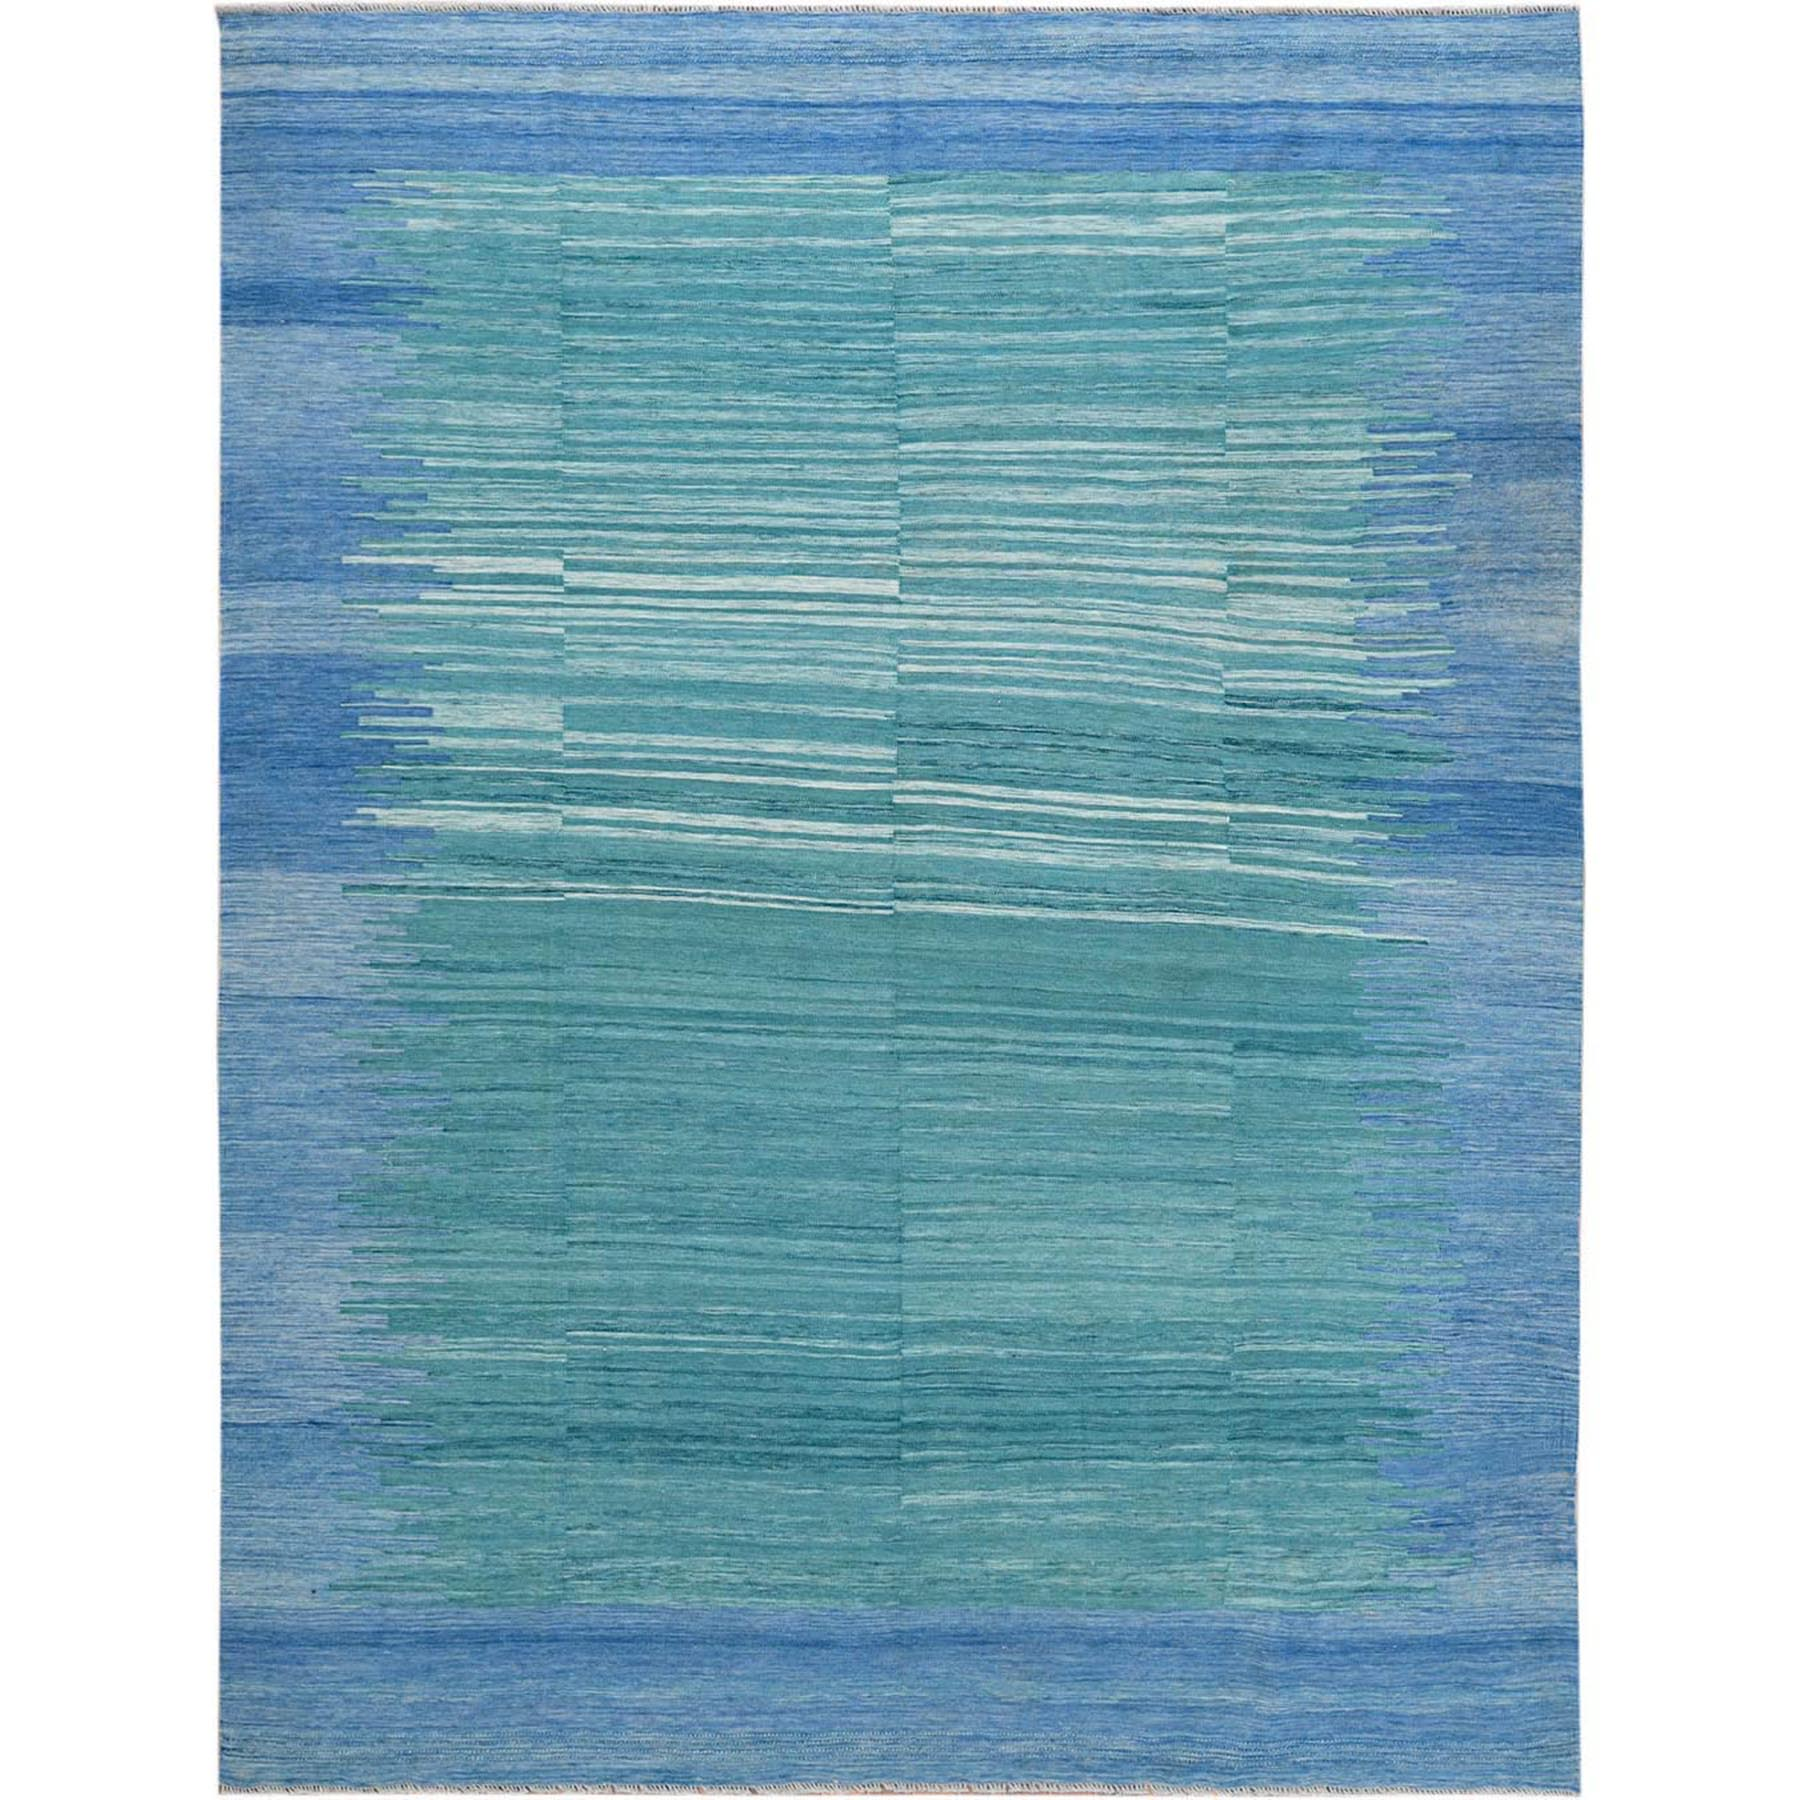 "9'2""x12' THE AQUAMARINE Flat Weave Kilim Natural Wool Reversible Hand Woven Oriental Rug"